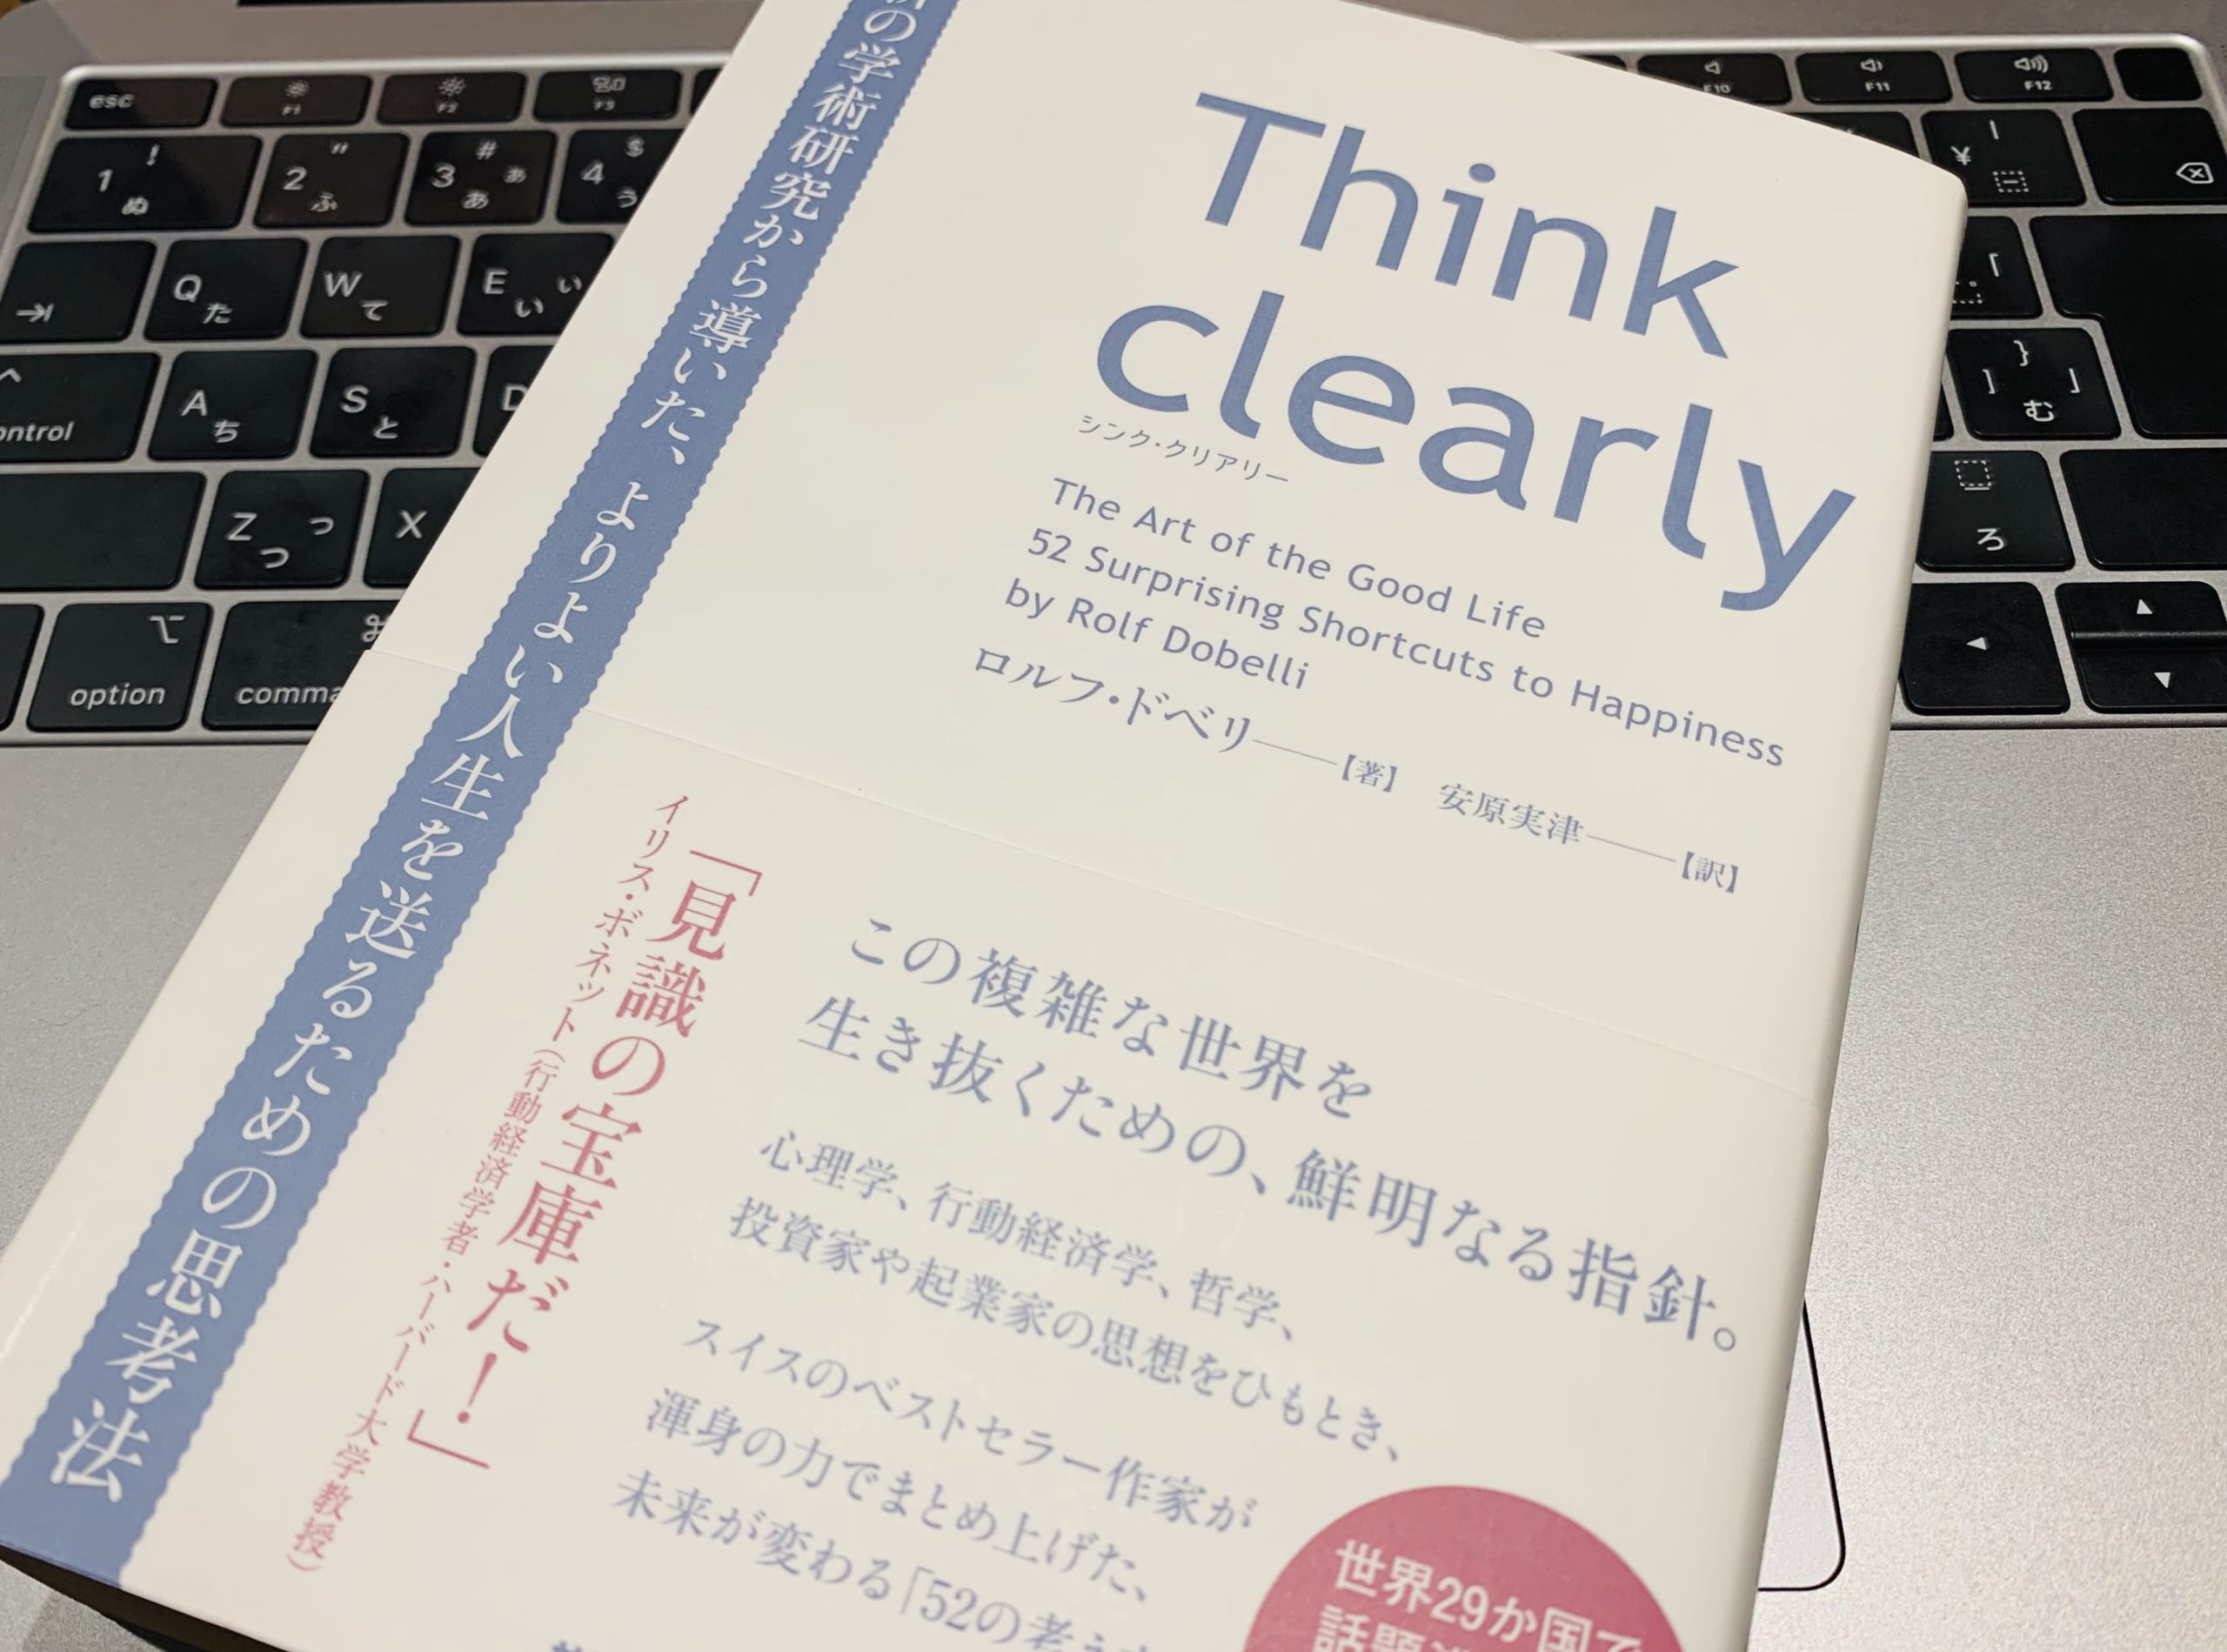 「Think clearly」の画像